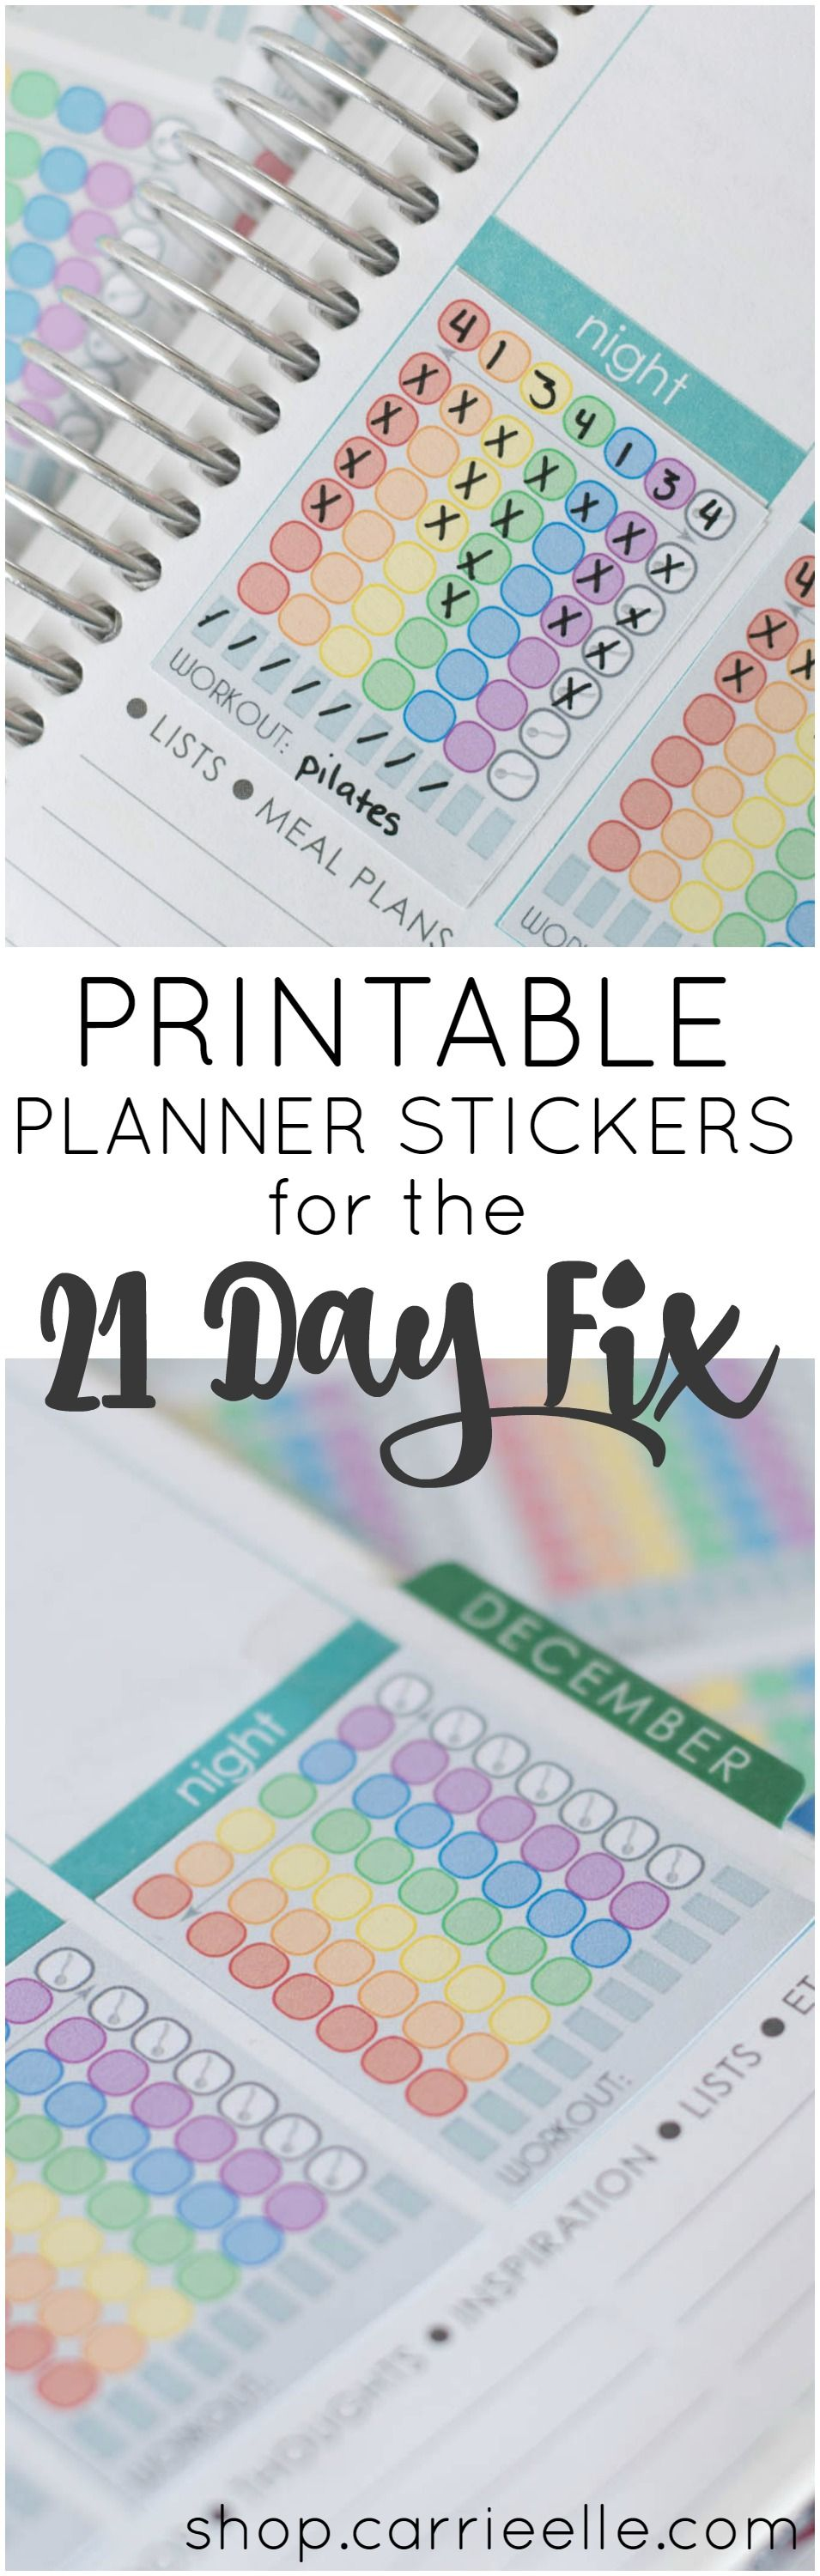 All You Need Is Some Sticker Paper And These Cute Stickers To Make Your Own